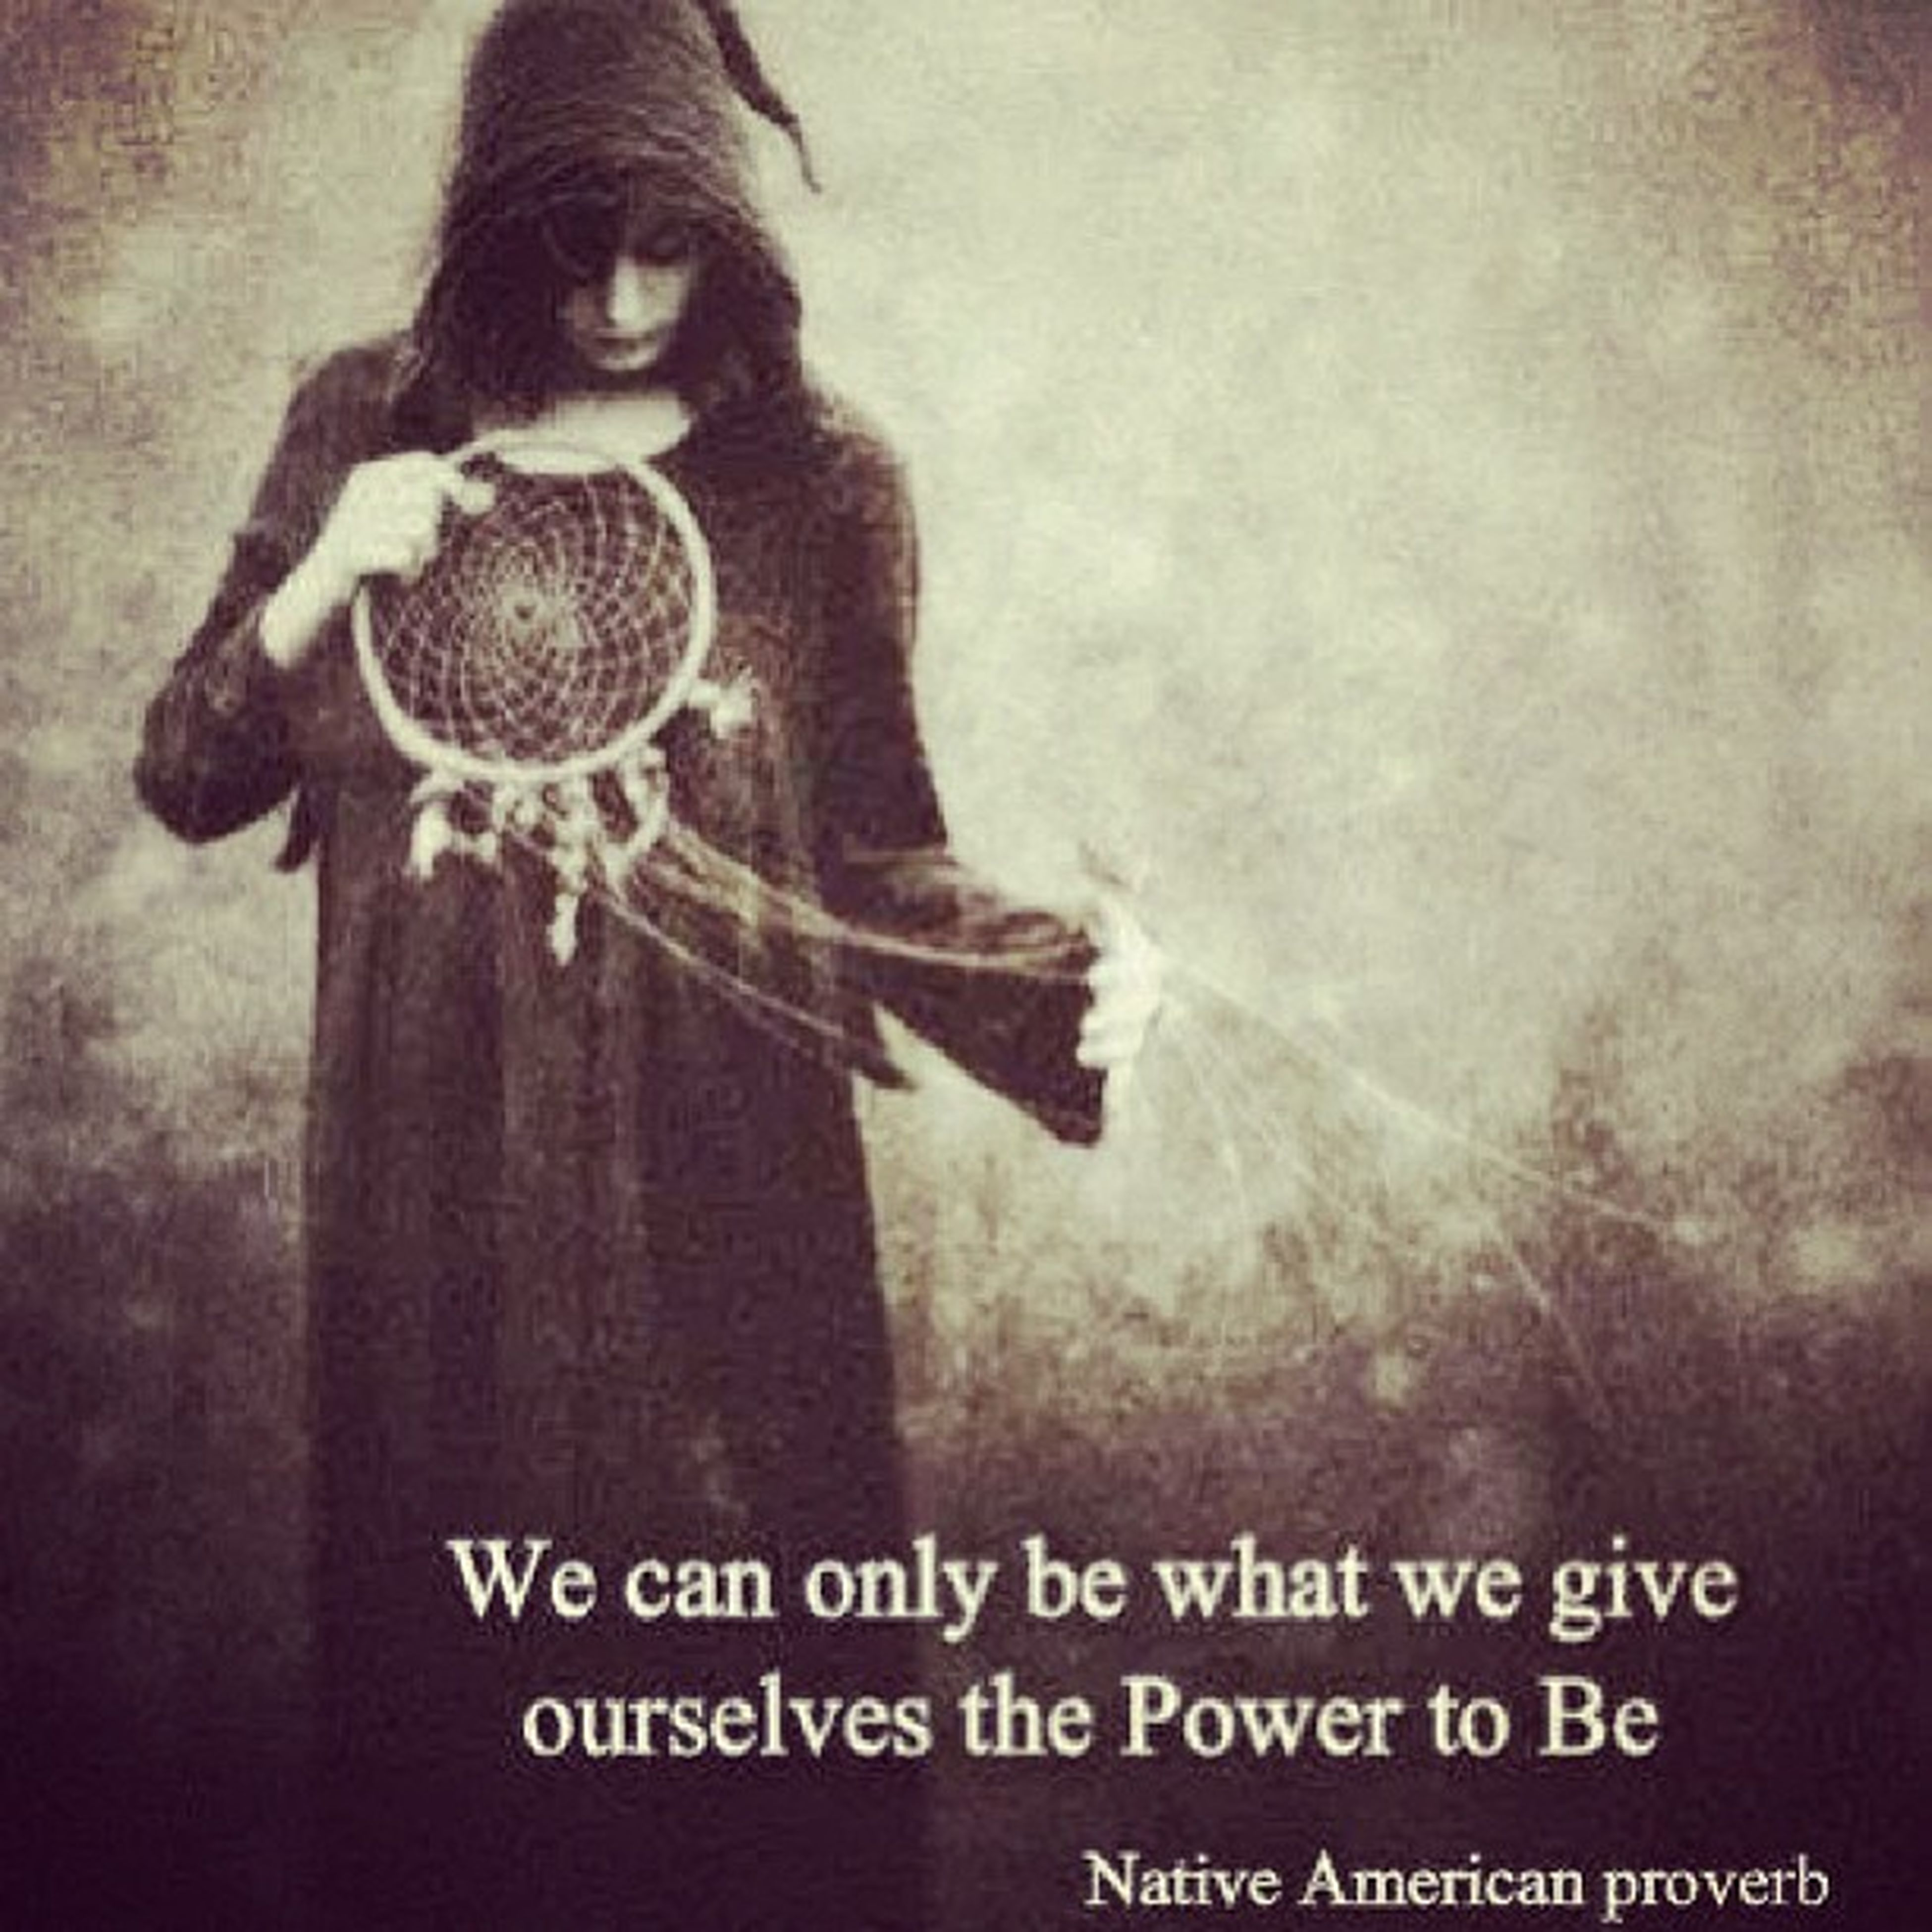 We Canonlybe Whatwegive Ourselvesthepowertobe power tobe witch shaman medicineman dream dreamcatcher spiritual notice life lifequotes nativeamericanproverbs native nativeamerican